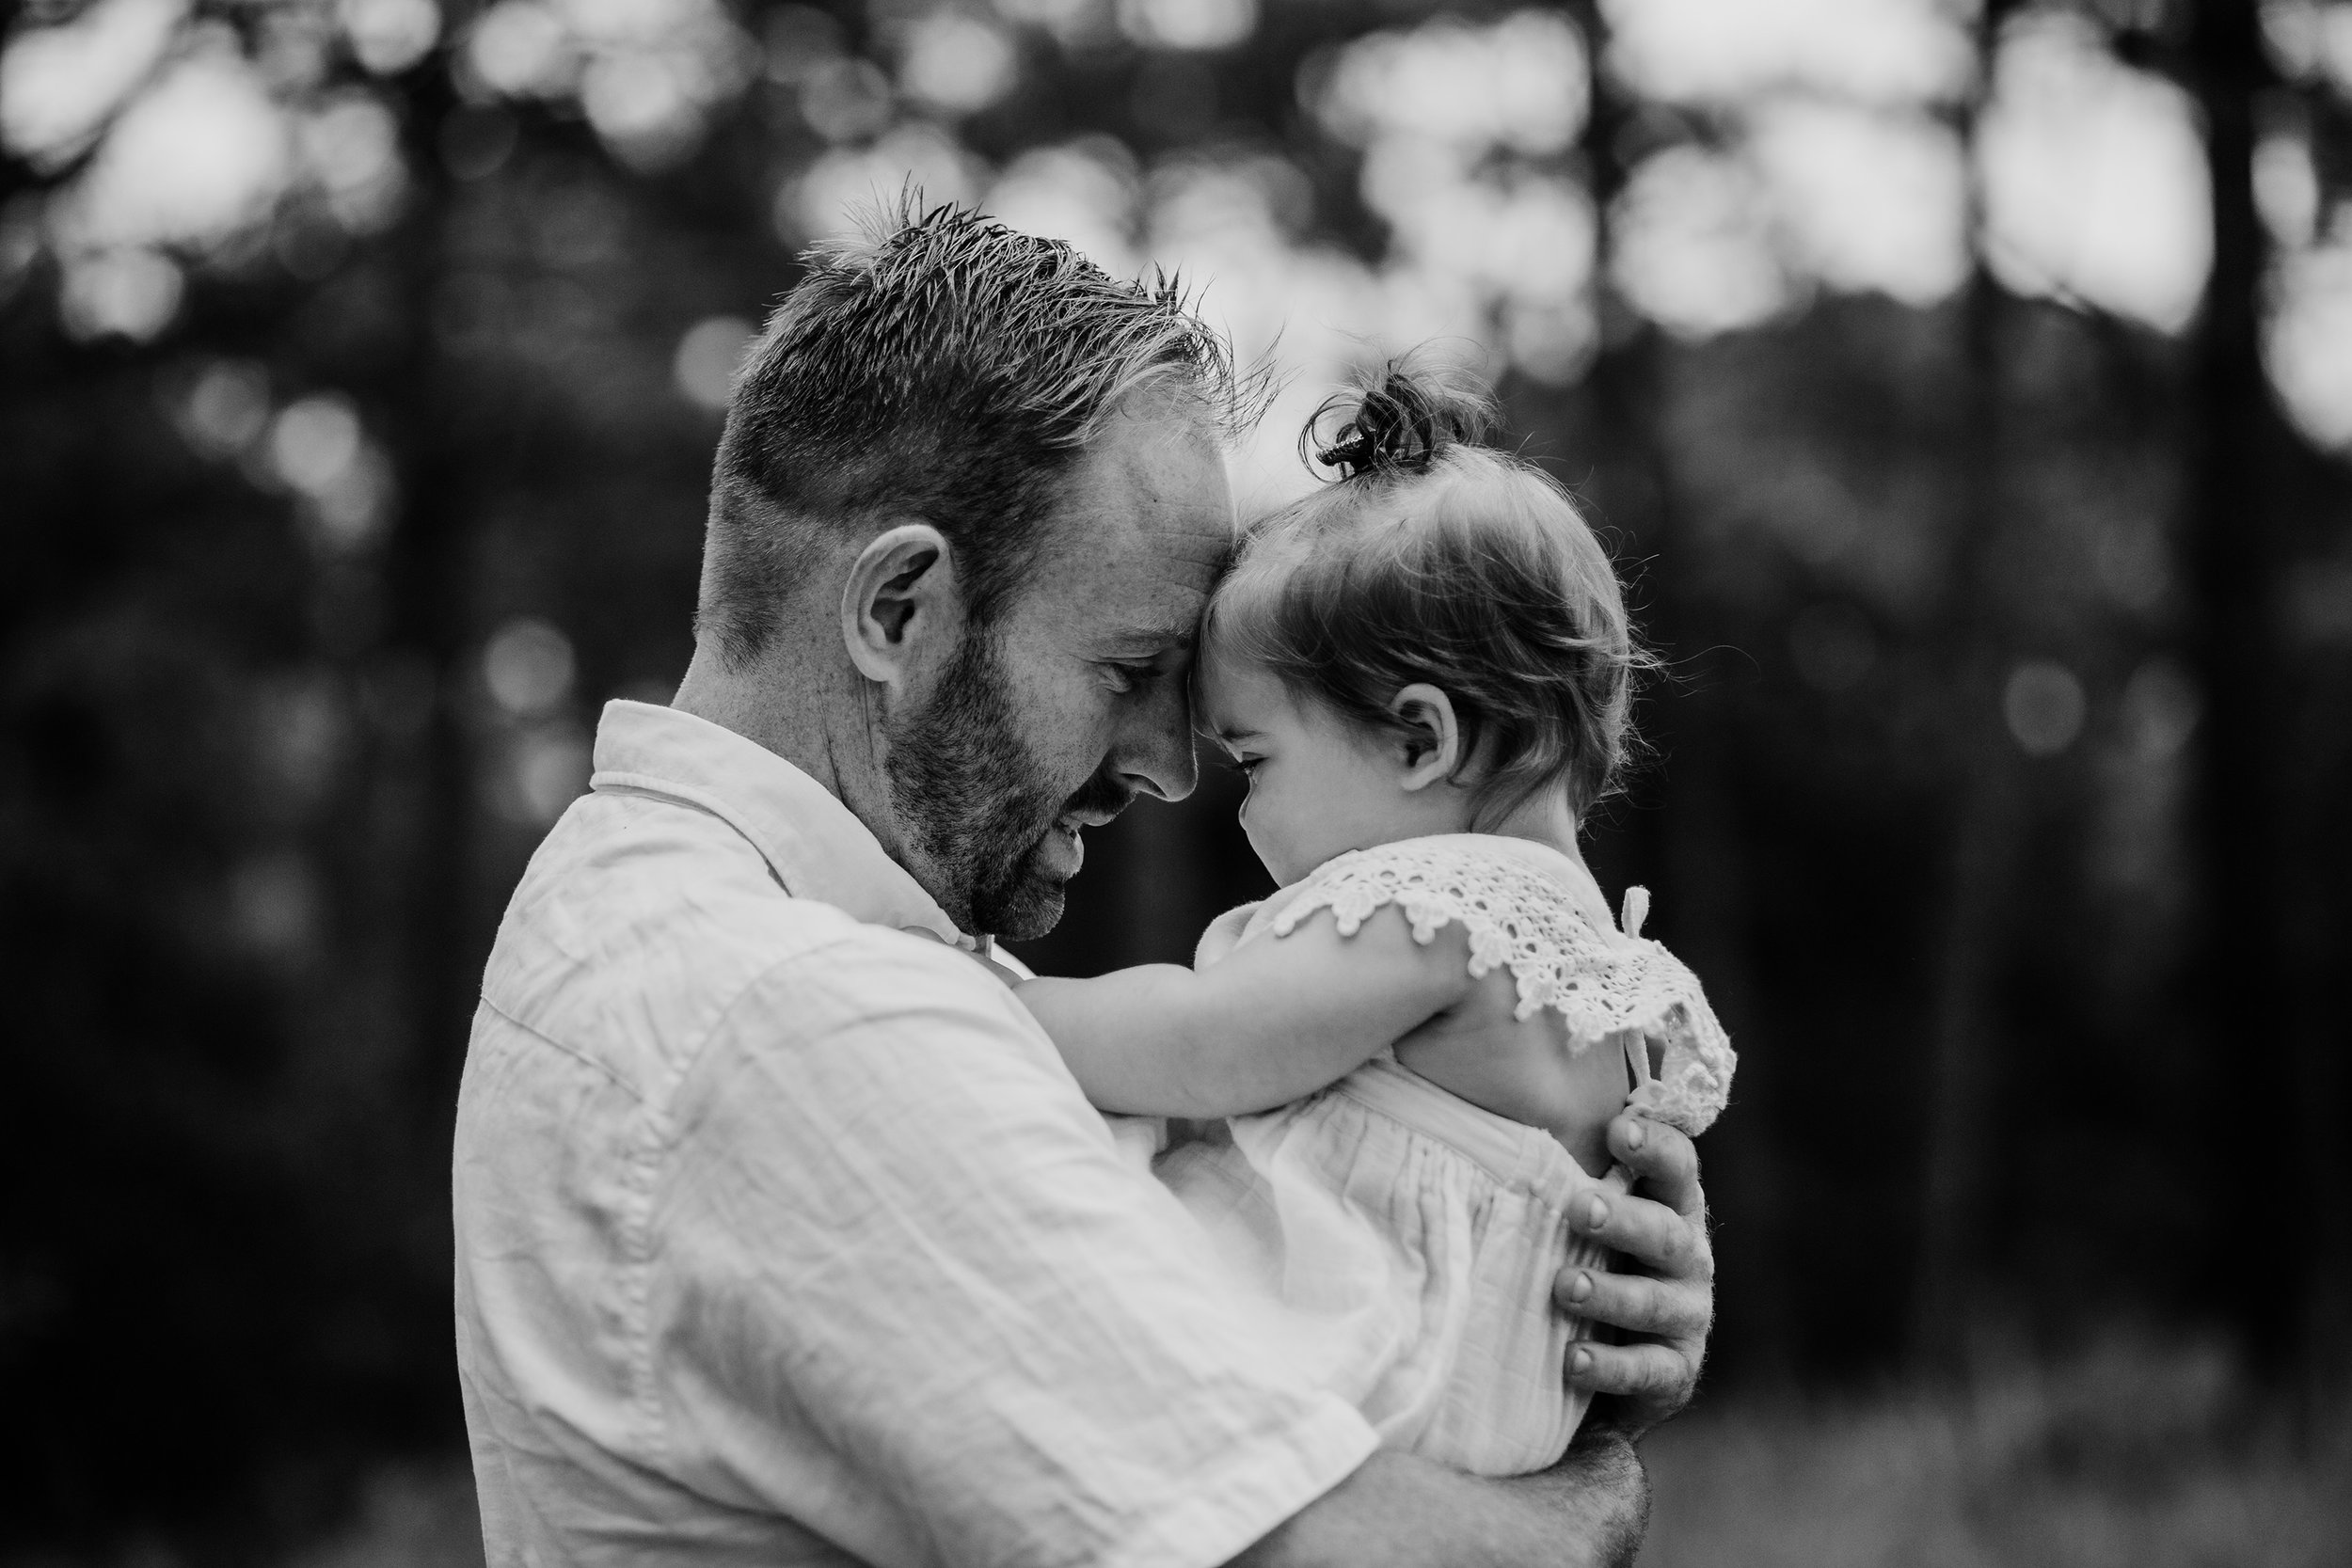 Tender moments family photography